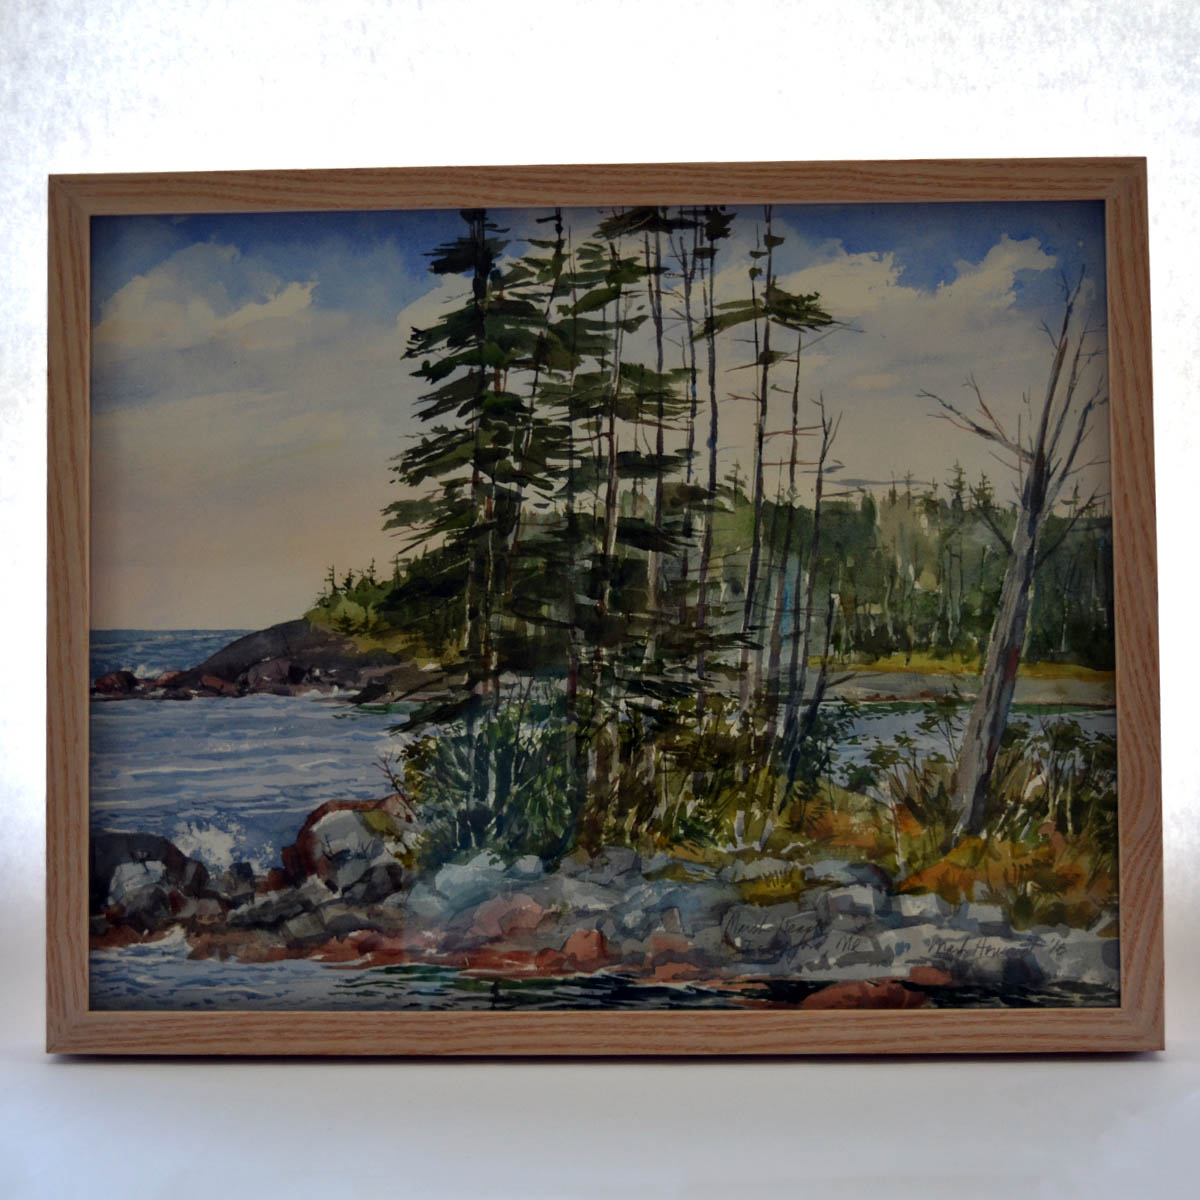 Mark Howard Watercolor - This original watercolor, generously provided by artist Mark Howard, is framed and ready to be displayed. Depicting a rocky coastal seascape, this work would fit perfectly in any area home.Value: $450.00